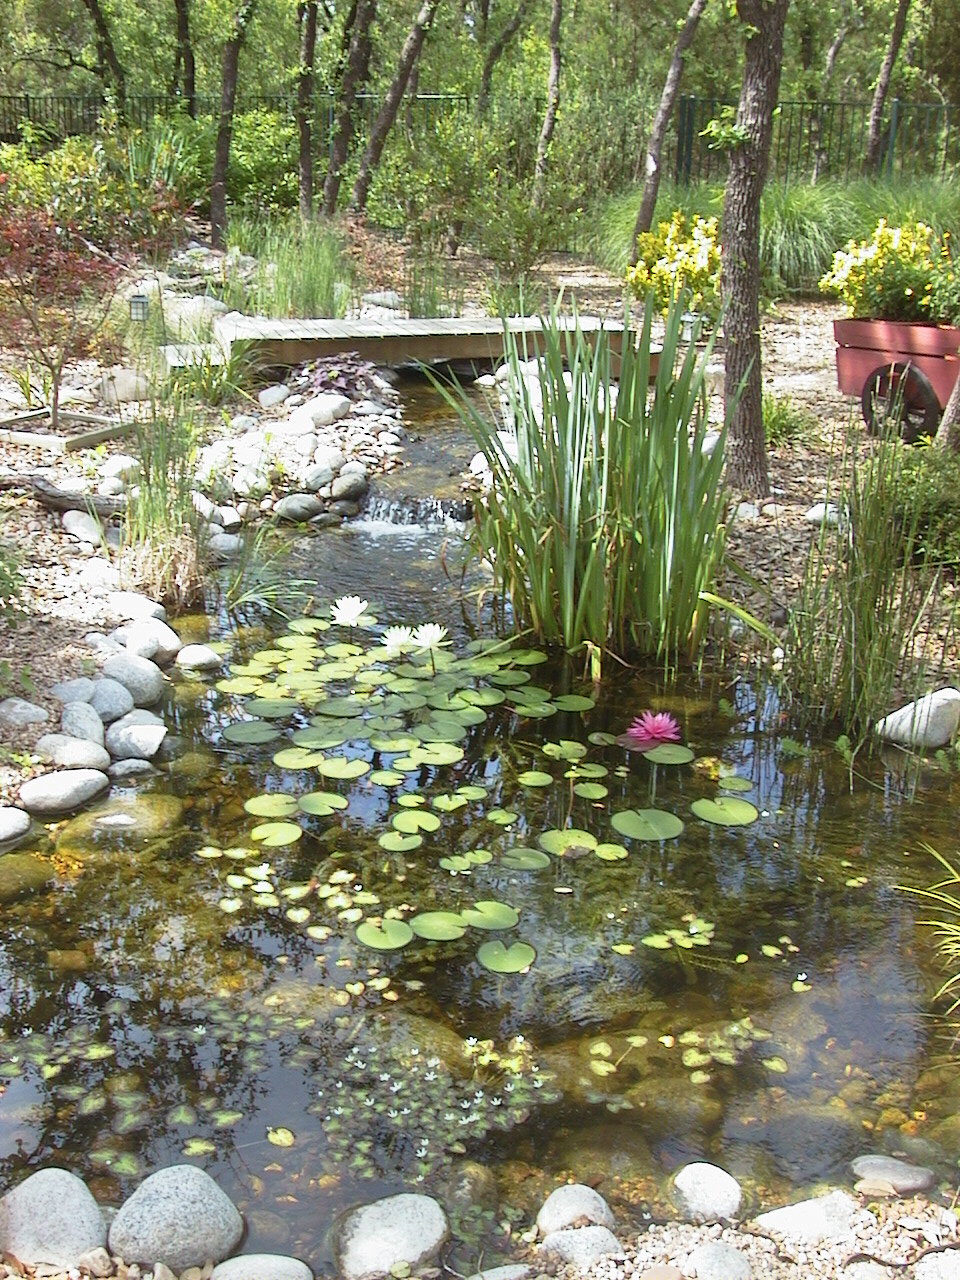 Pond Wallpaper Hd Pond Wallpapers High Quality Download Free